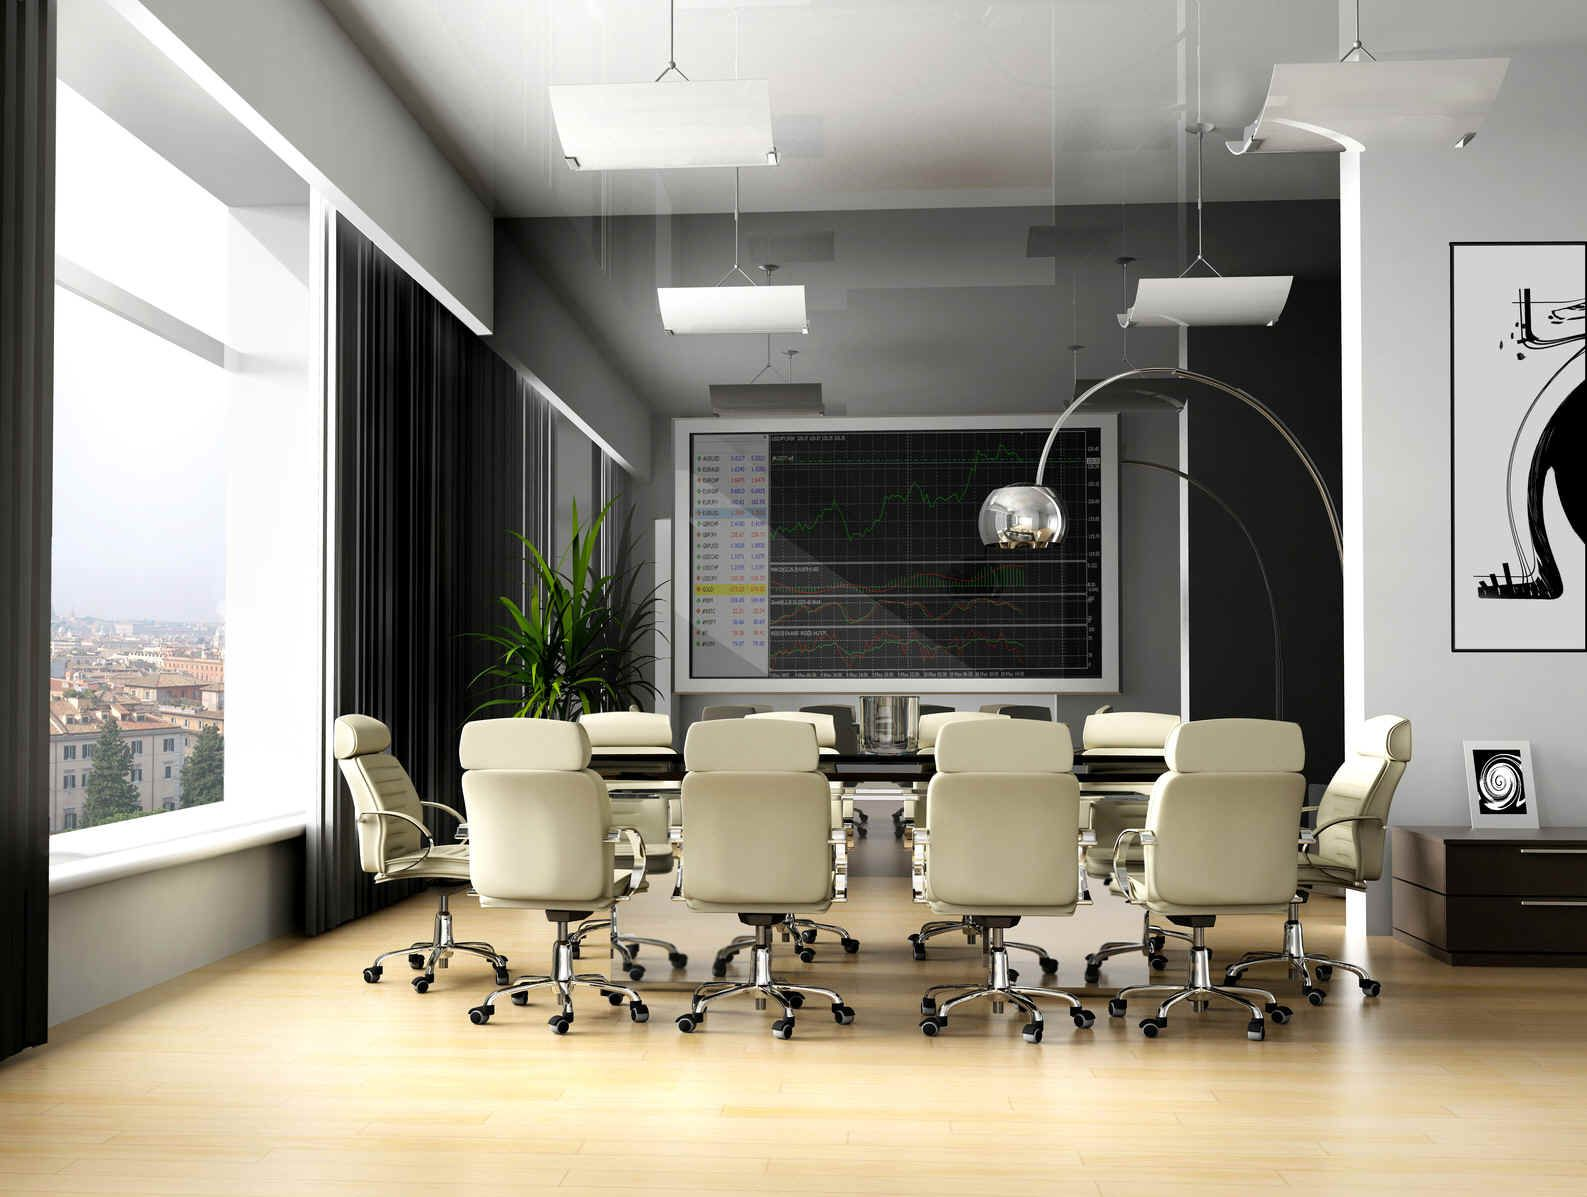 corporate office décor What's Hot On Pinterest Corporate Office Space Décor! Whats Hot On Pinterest Corporate Office Space D  cor2 1